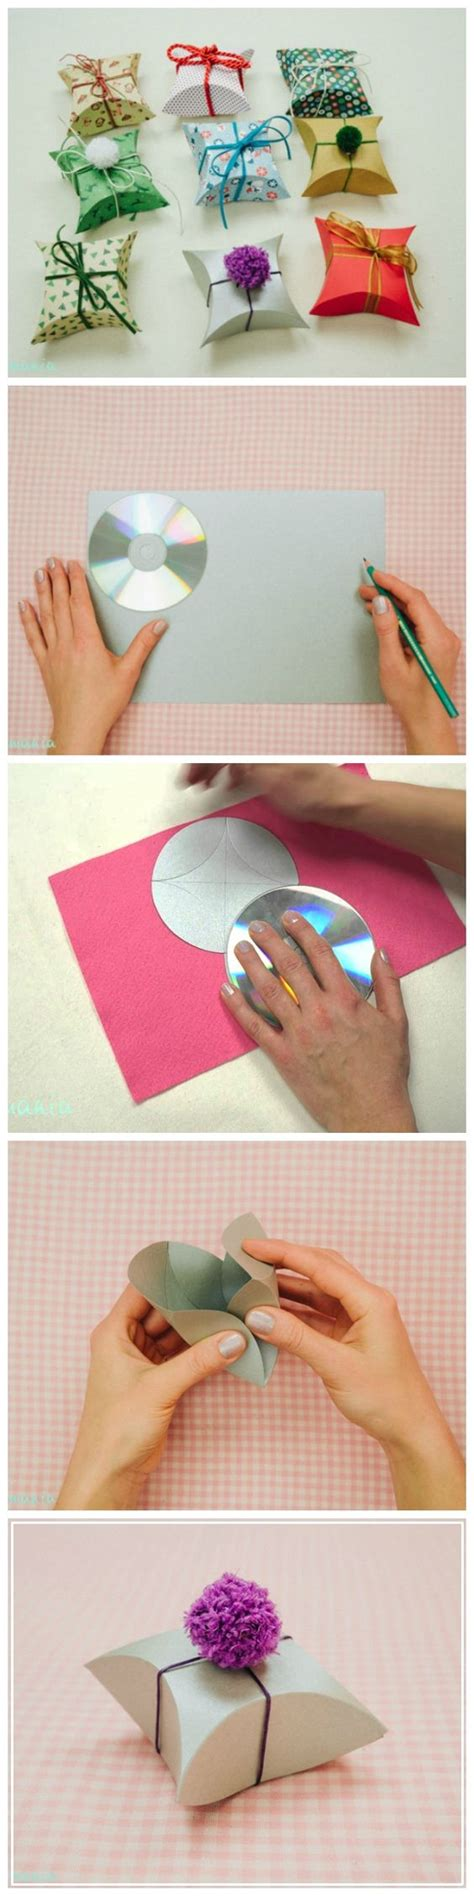 How To Make Decorative Gift Boxes At Home by 15 Diy Tutorials For Gift Wrappers Pretty Designs